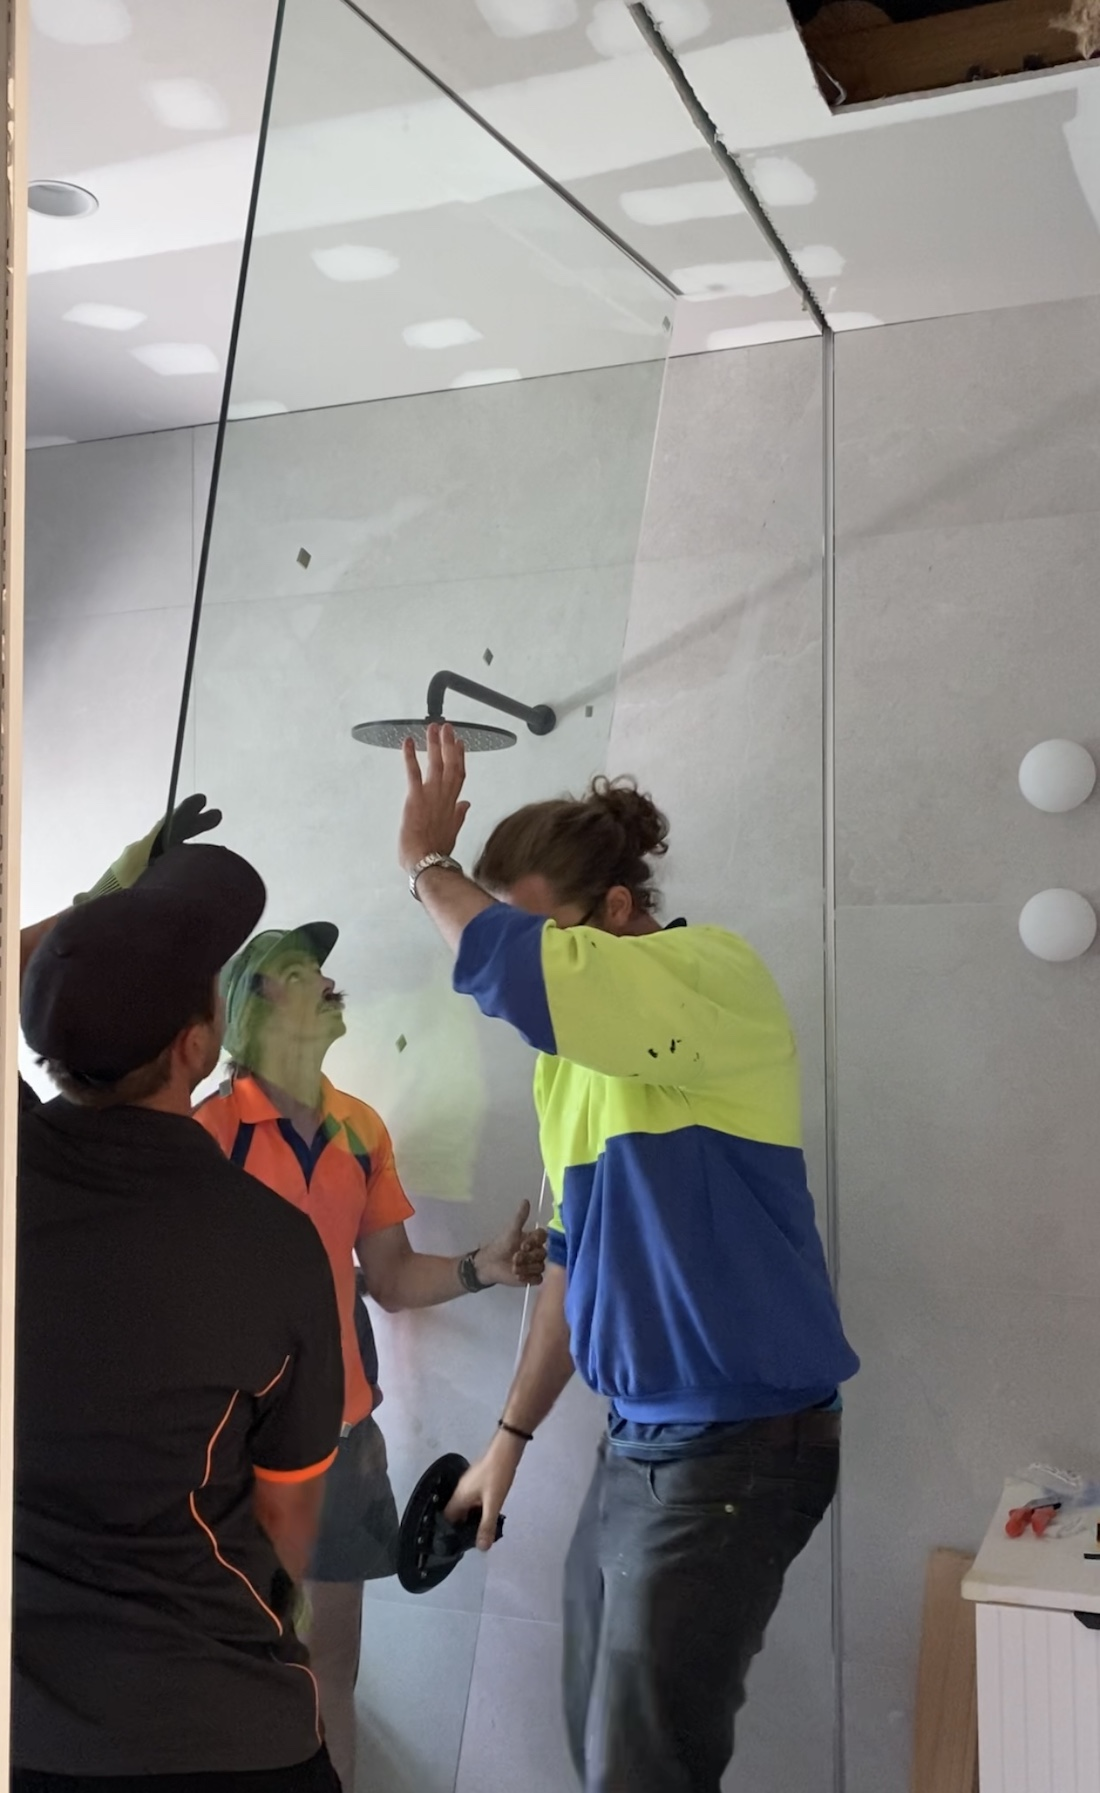 Glass screen being installed glass floor to ceiling shower screen